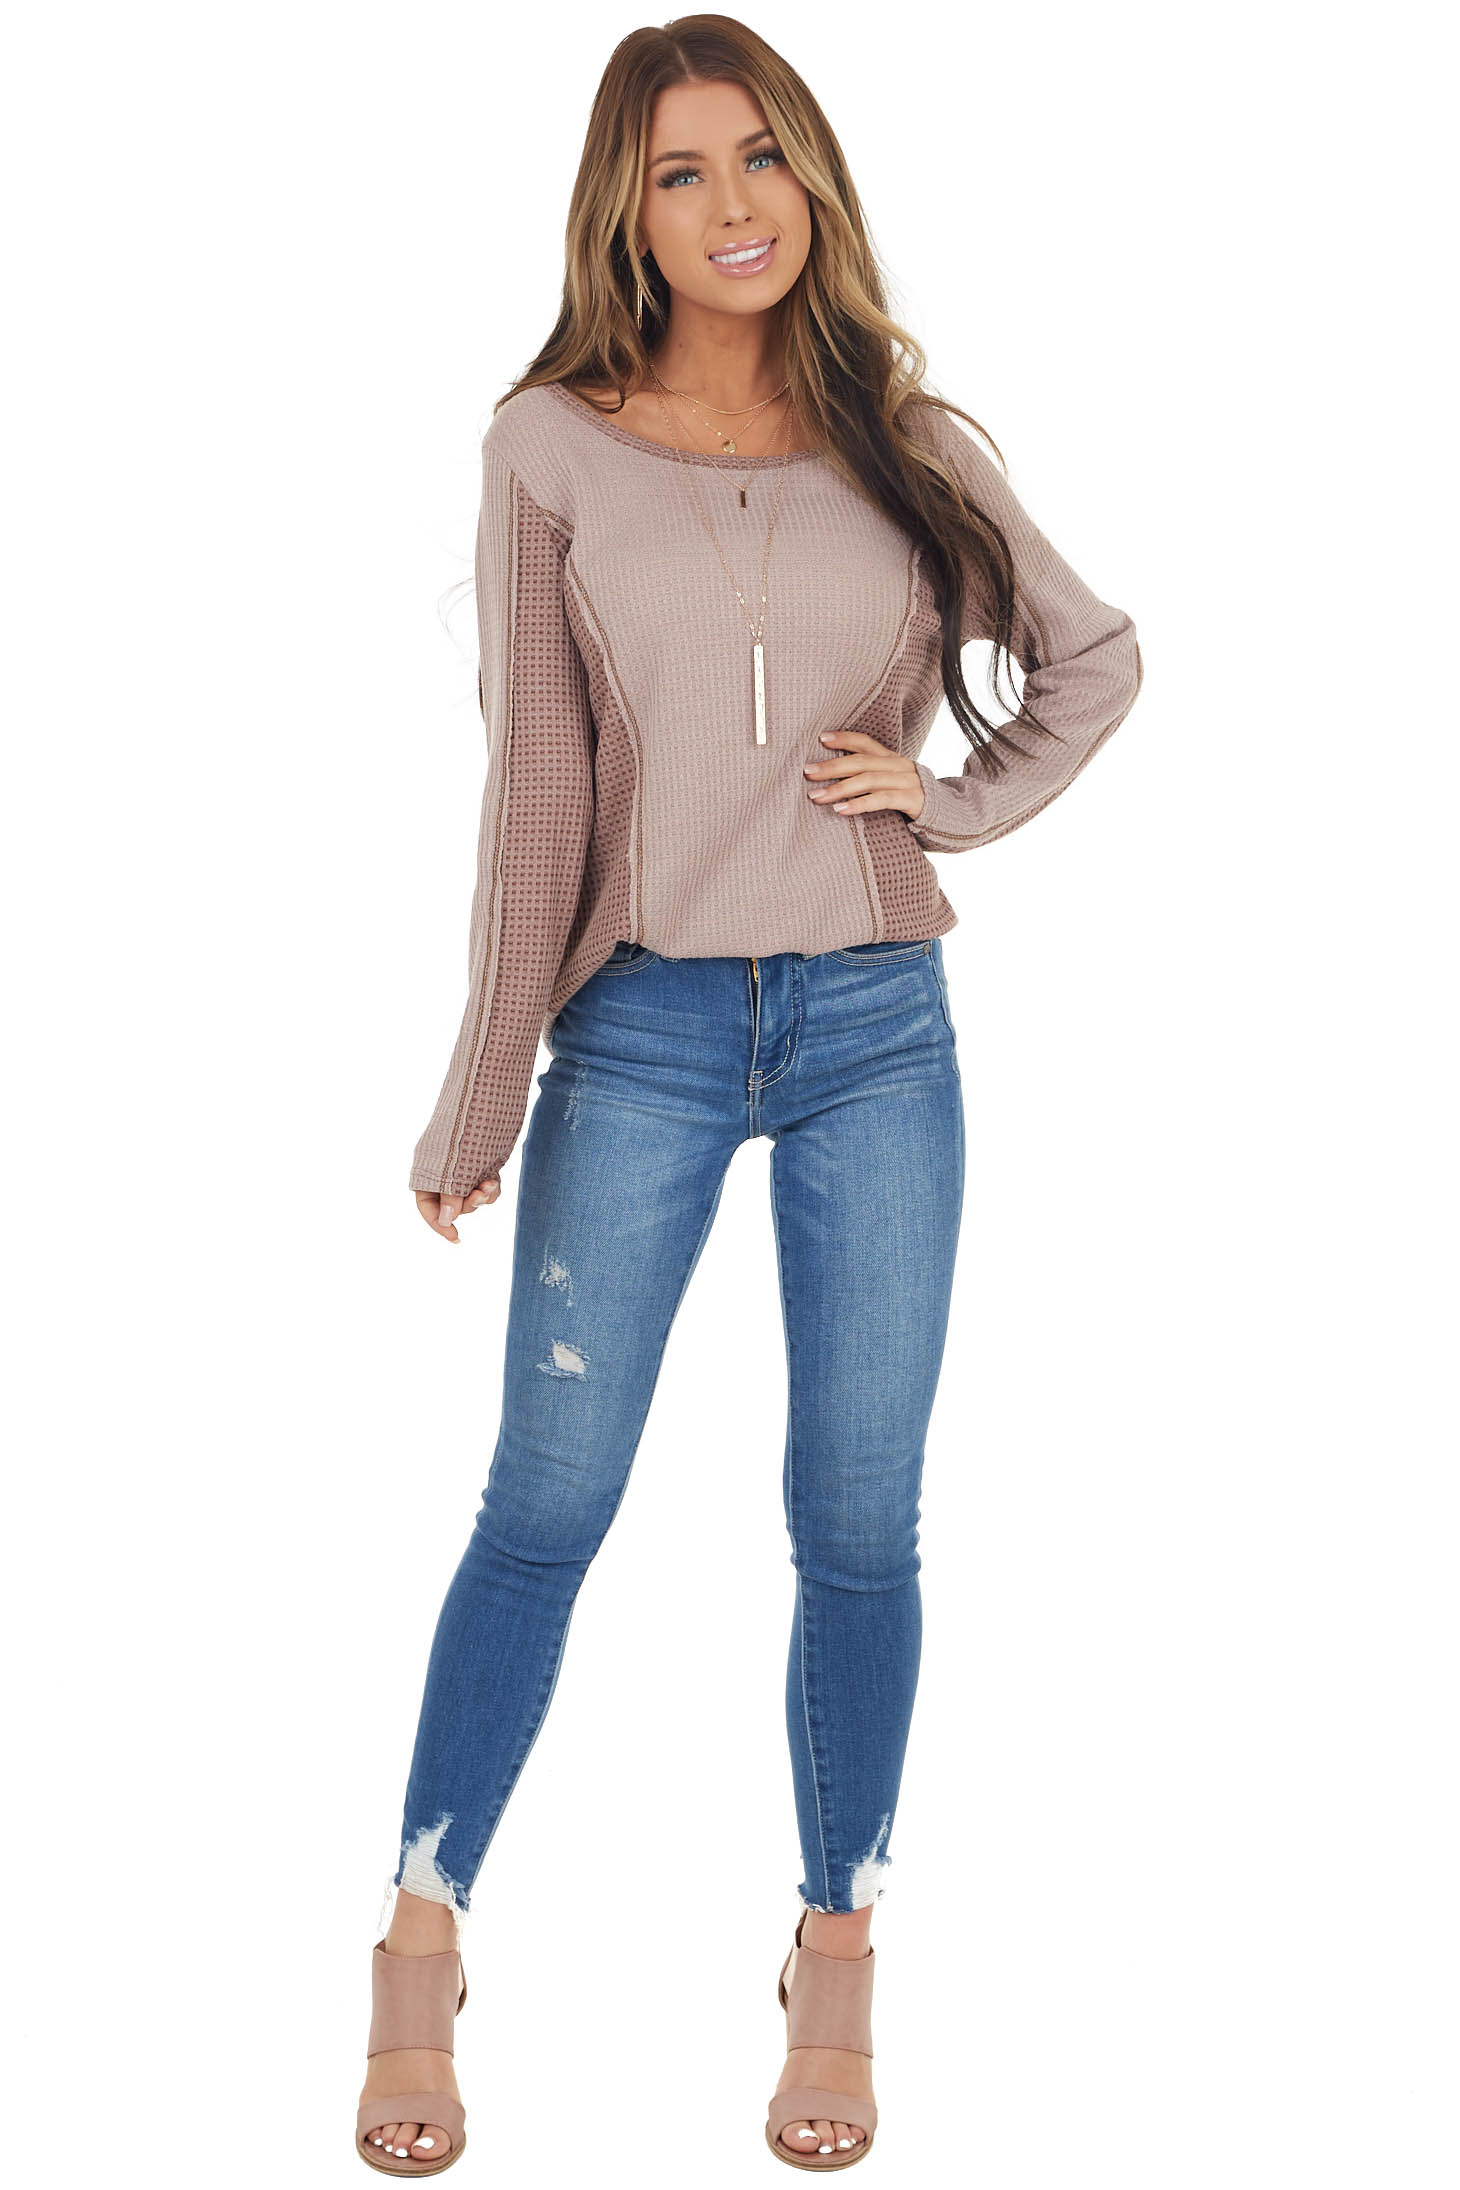 Dusty Rose Long Sleeve Waffle Knit Top with Contrast Detail